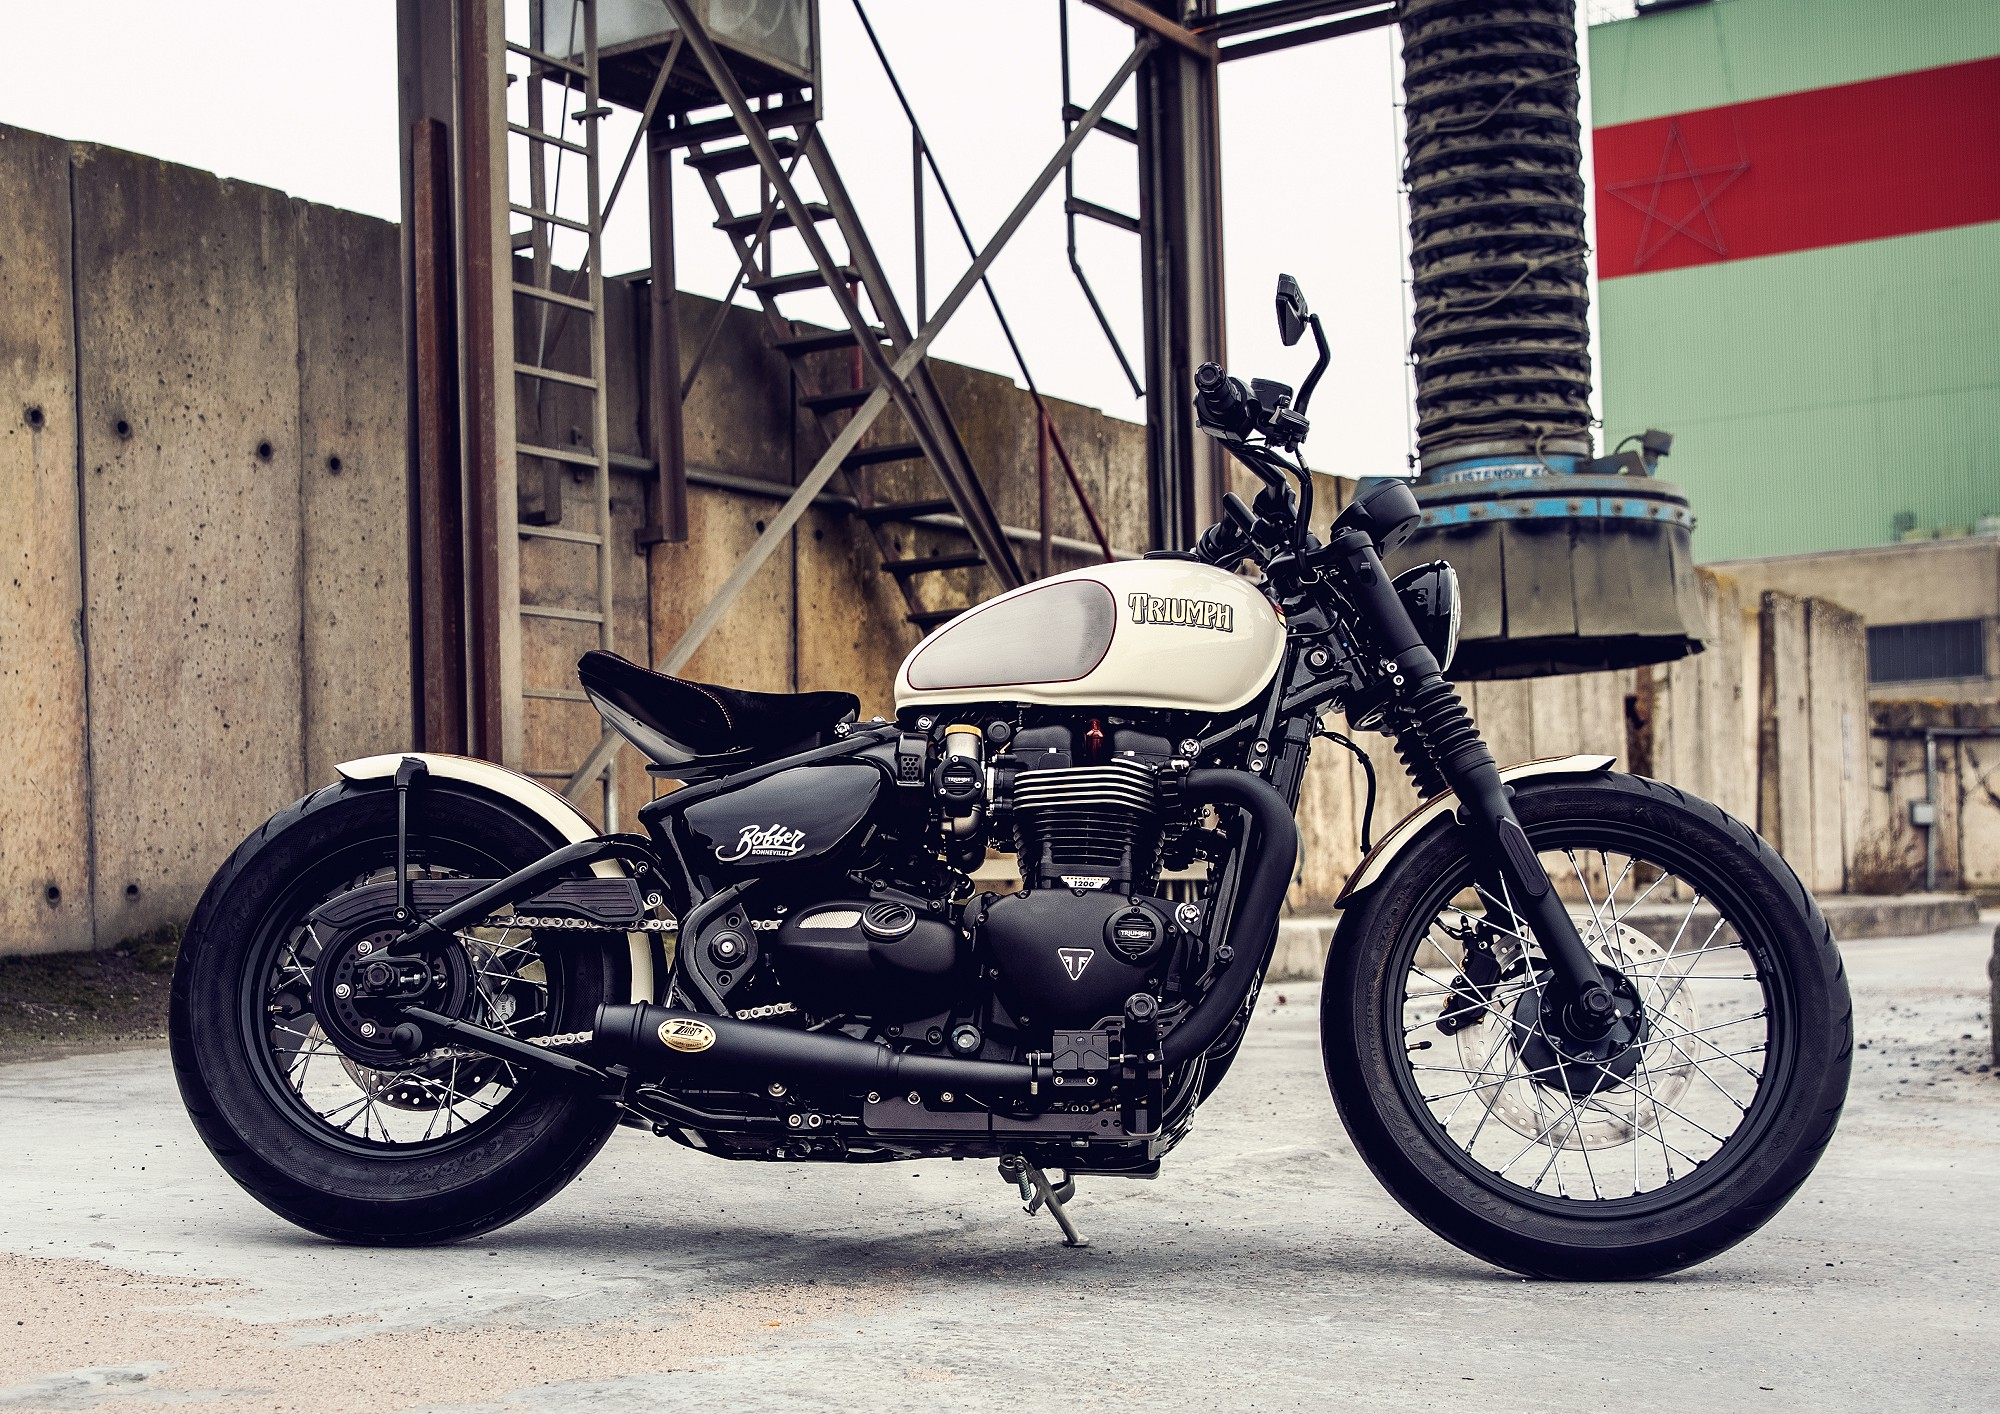 Wk Custom Motorbike Conversion With All Details Overview